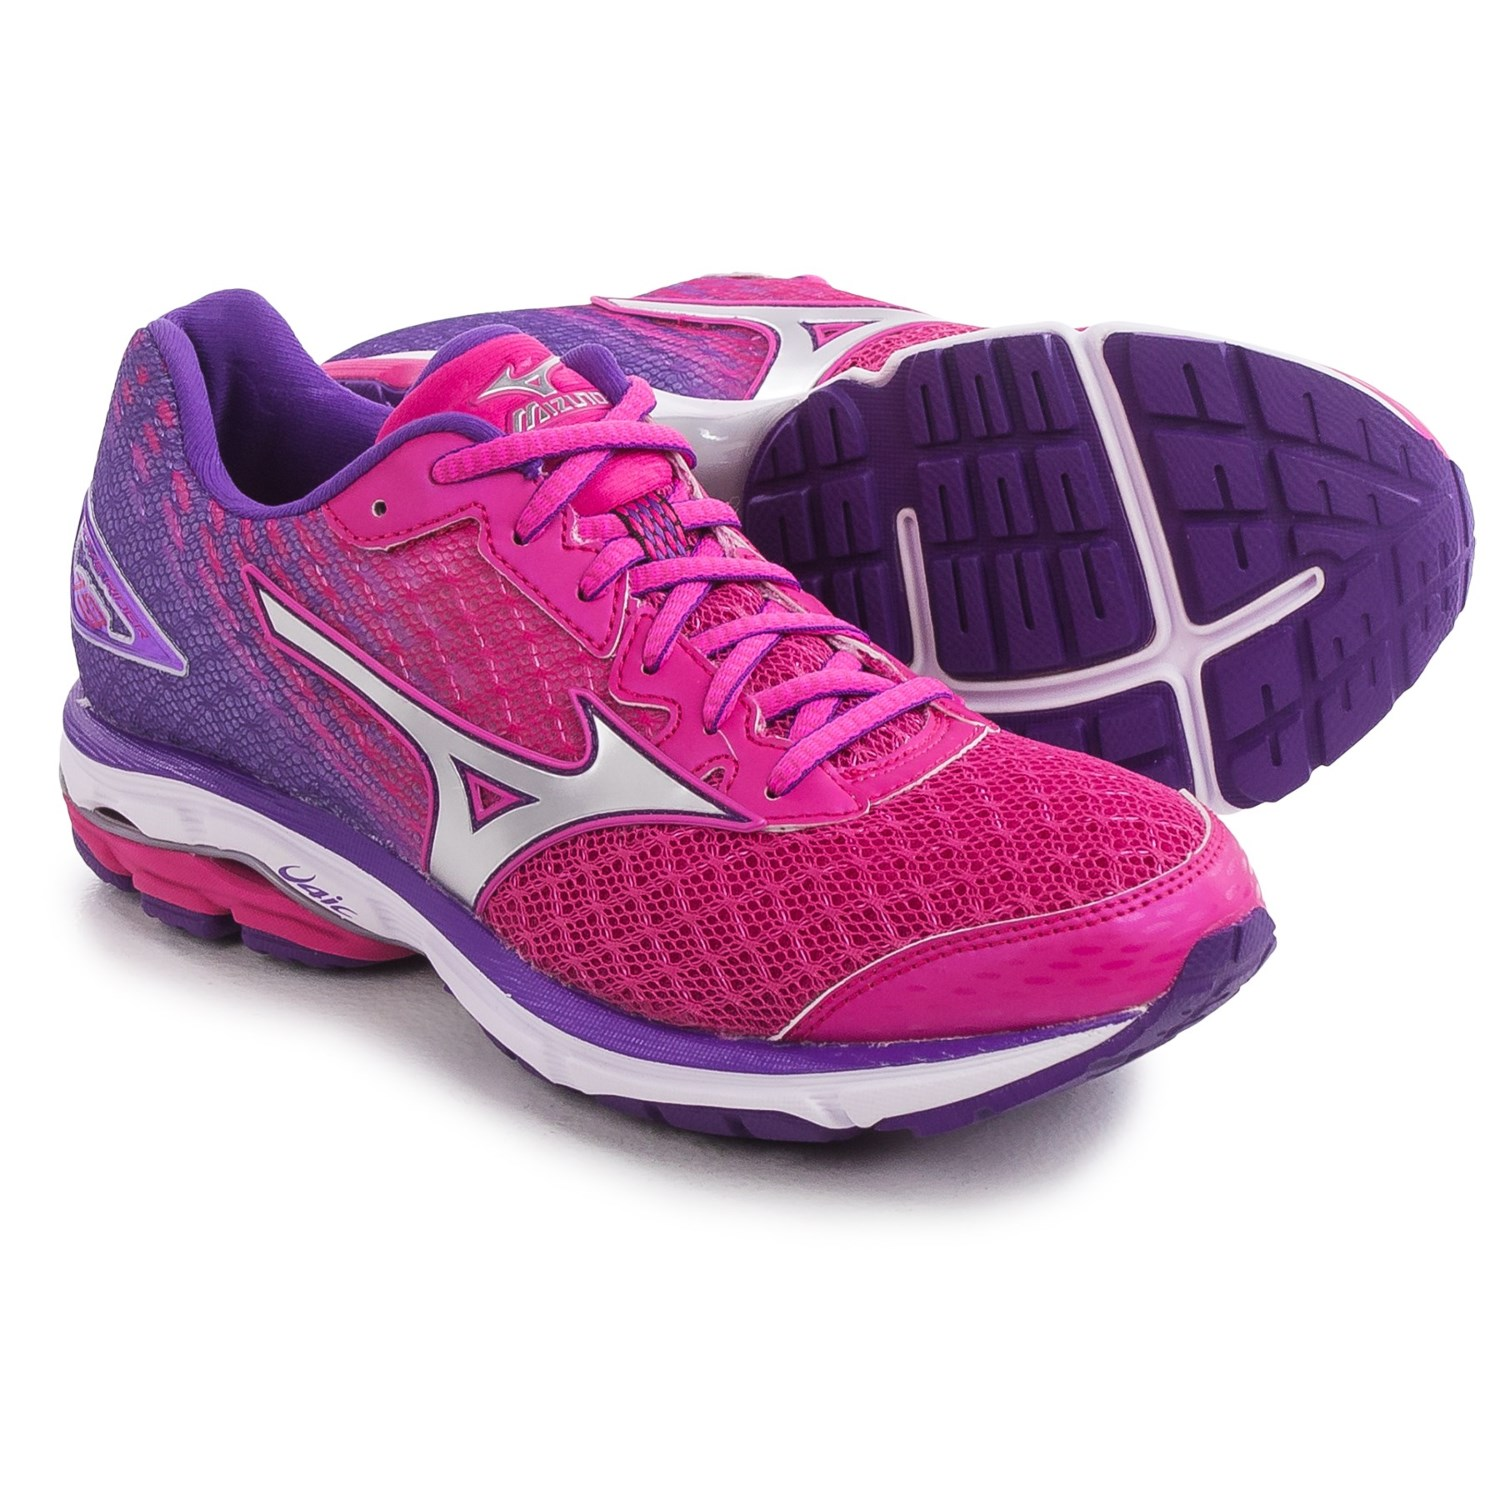 mizuno wave rider 19 running shoes for women save 41. Black Bedroom Furniture Sets. Home Design Ideas